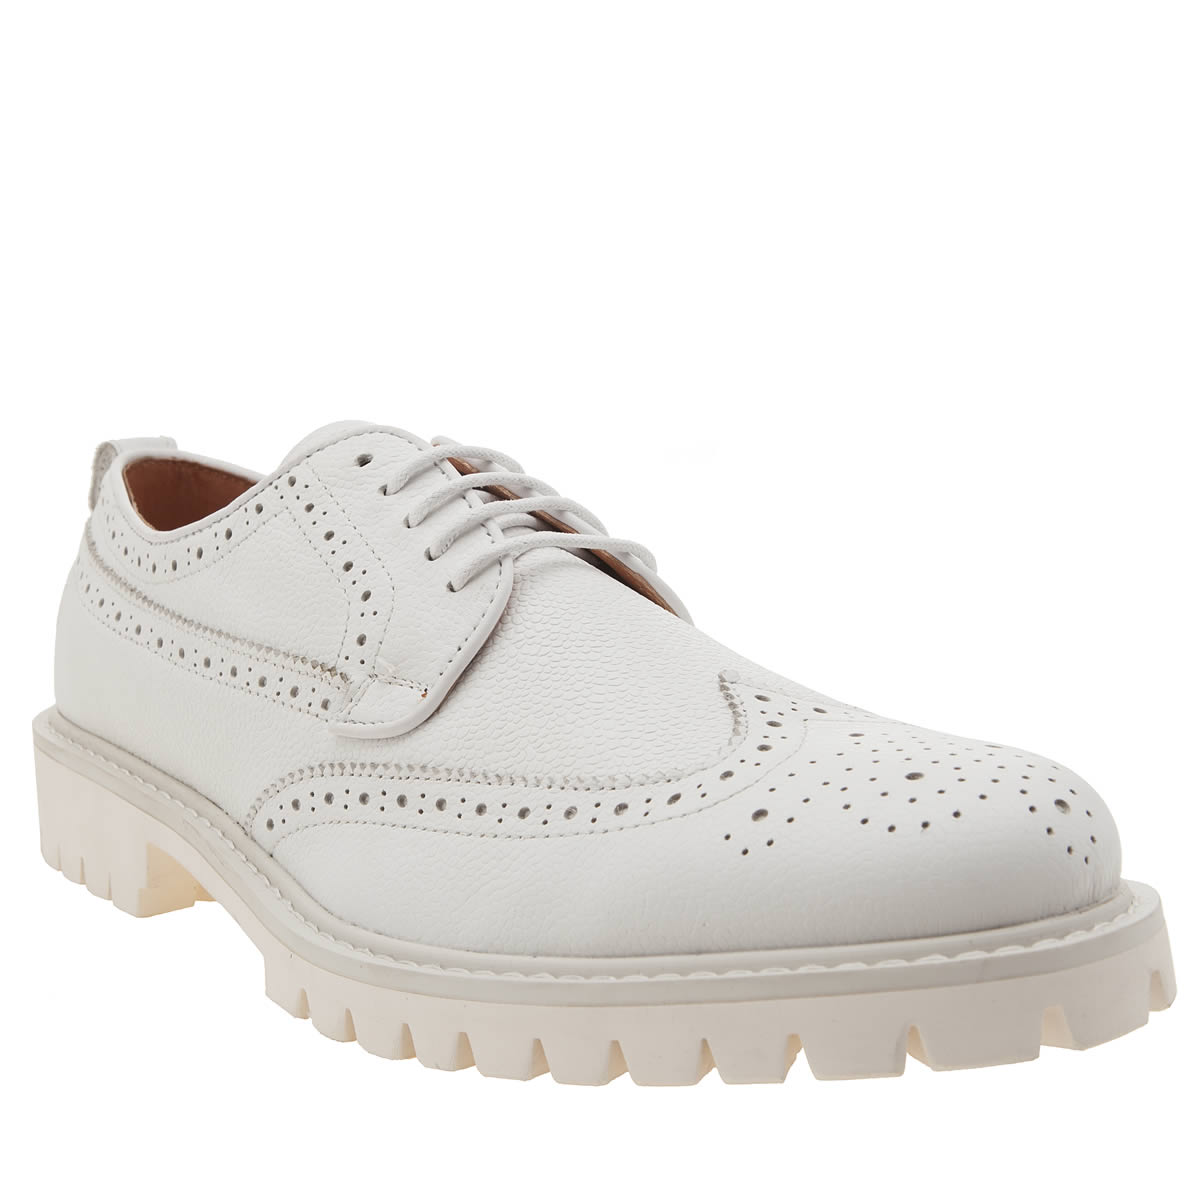 Peter Werth Peter Werth White Oldman Brogue Shoes